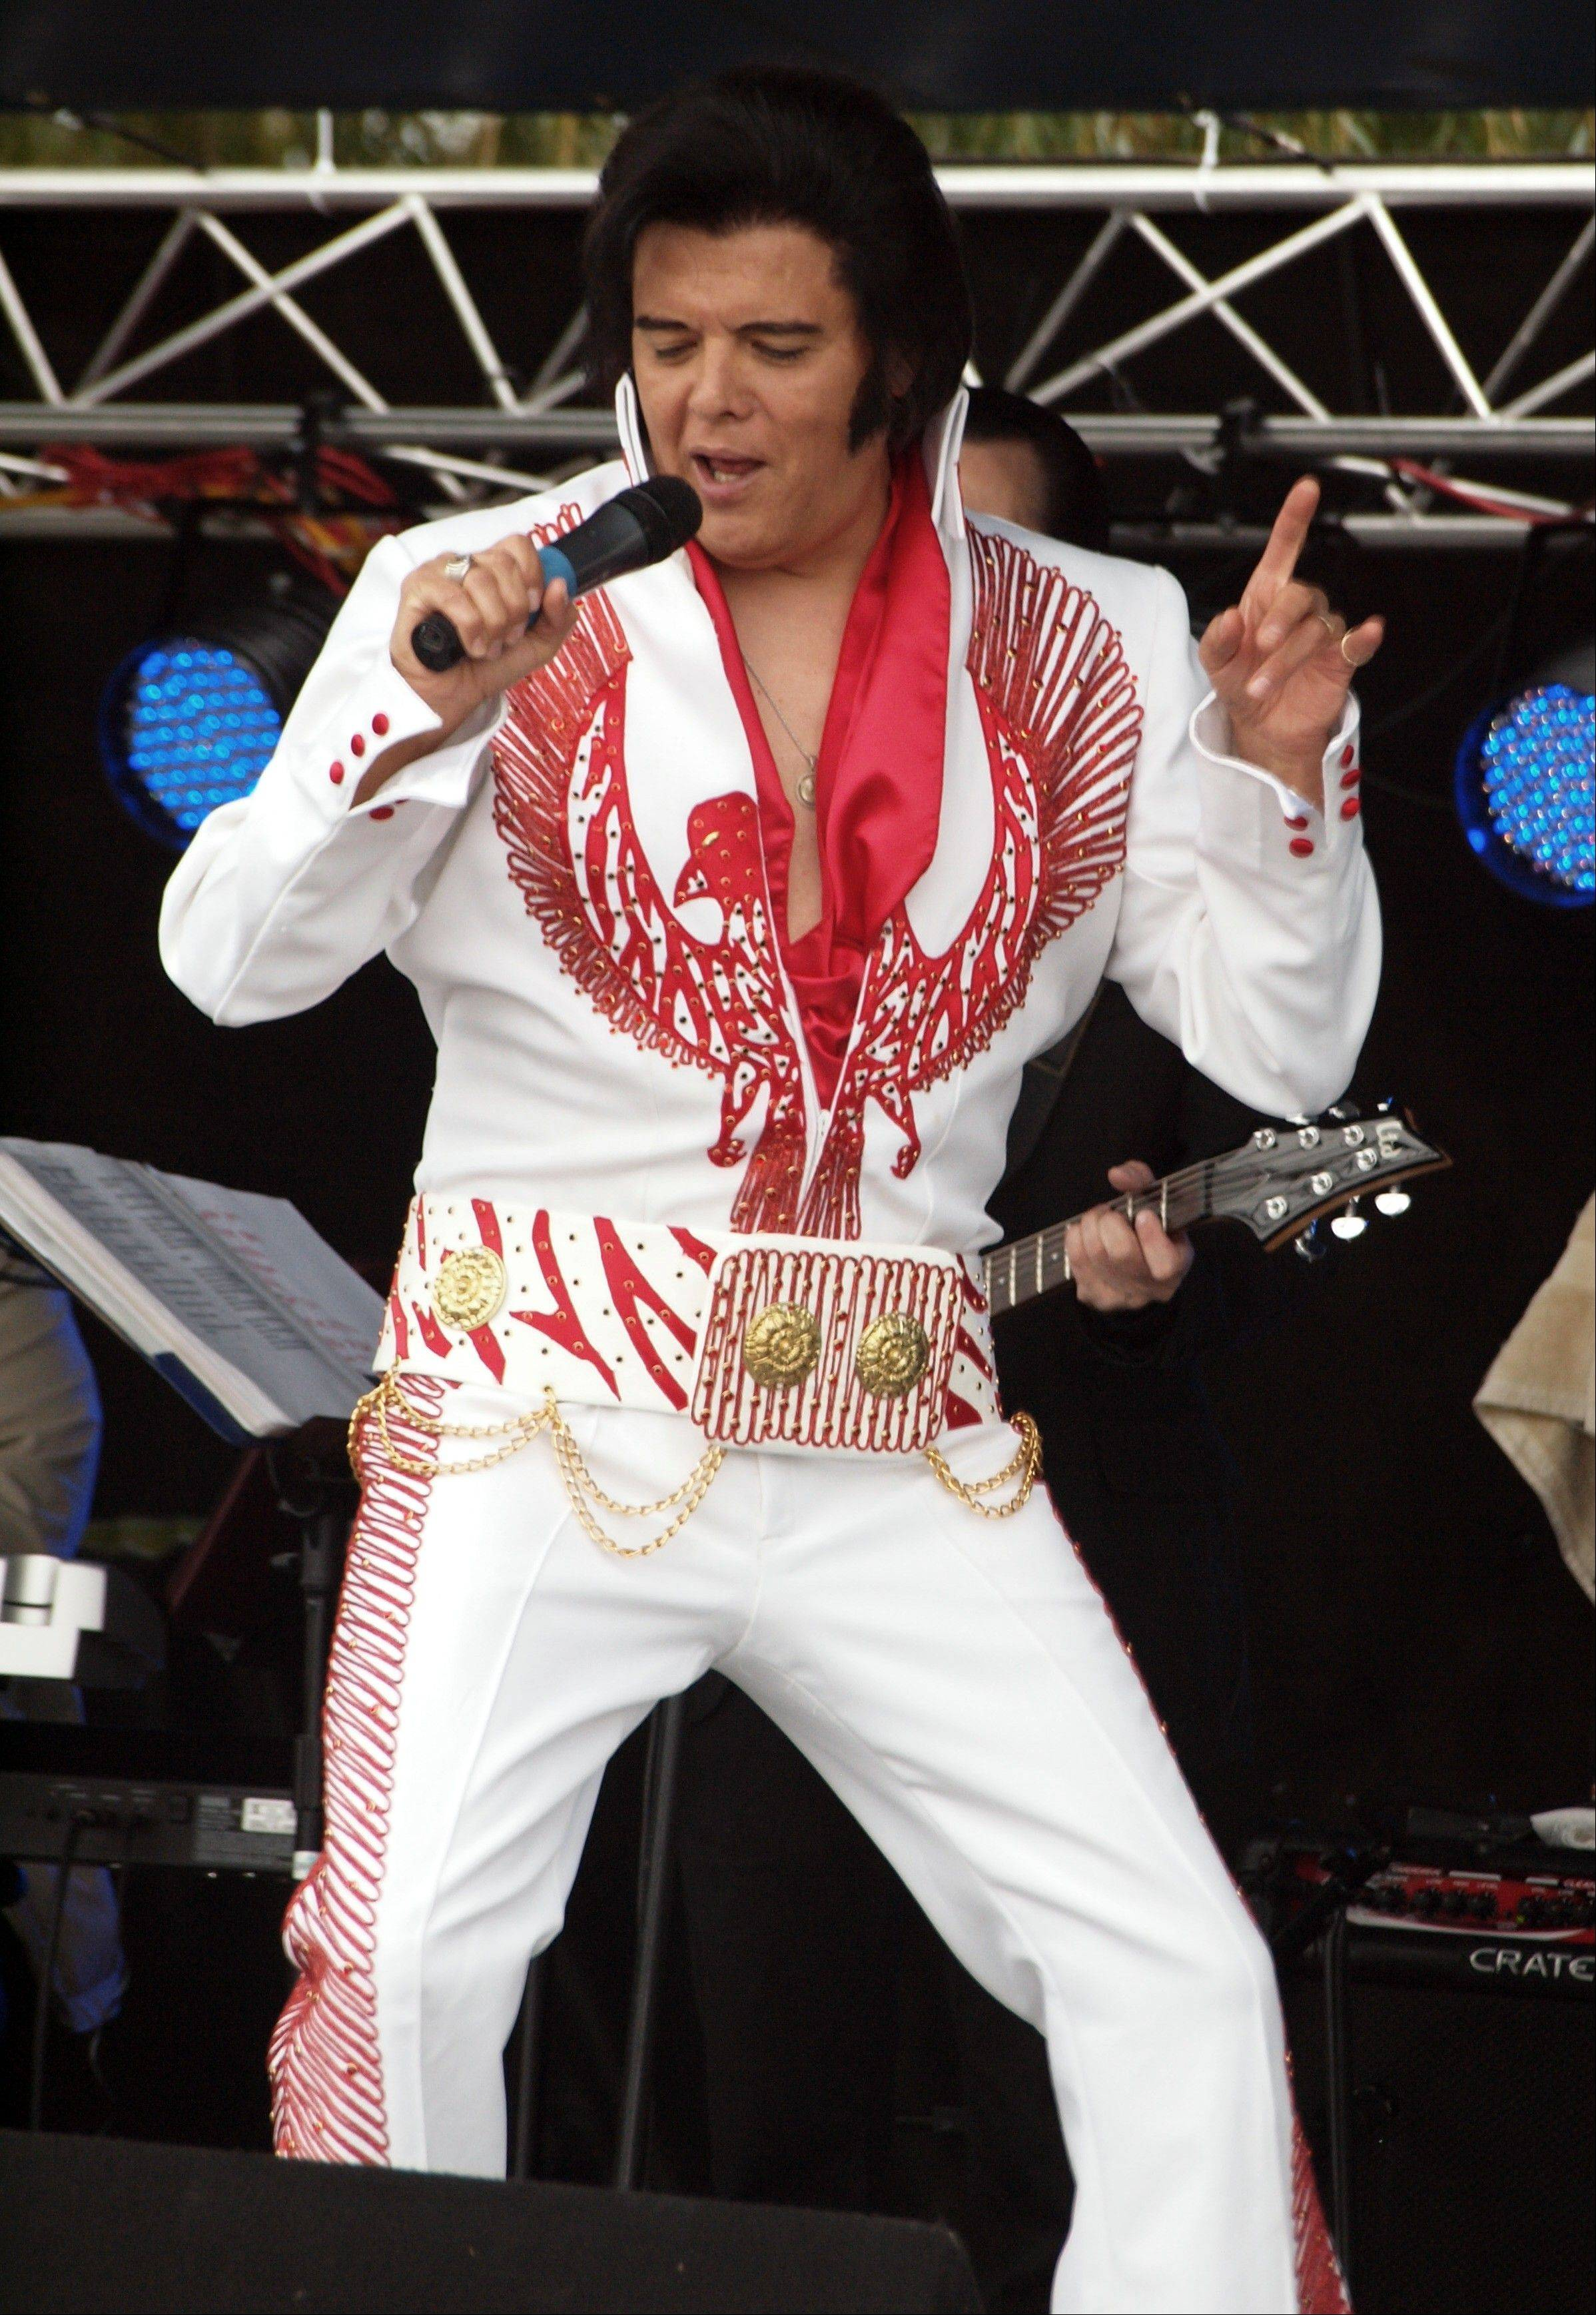 Elvis Presley impersonator Rick Saucedo will perform at the St. Stephen's Family Festival at St. Stephen Catholic Church in Des Plaines.